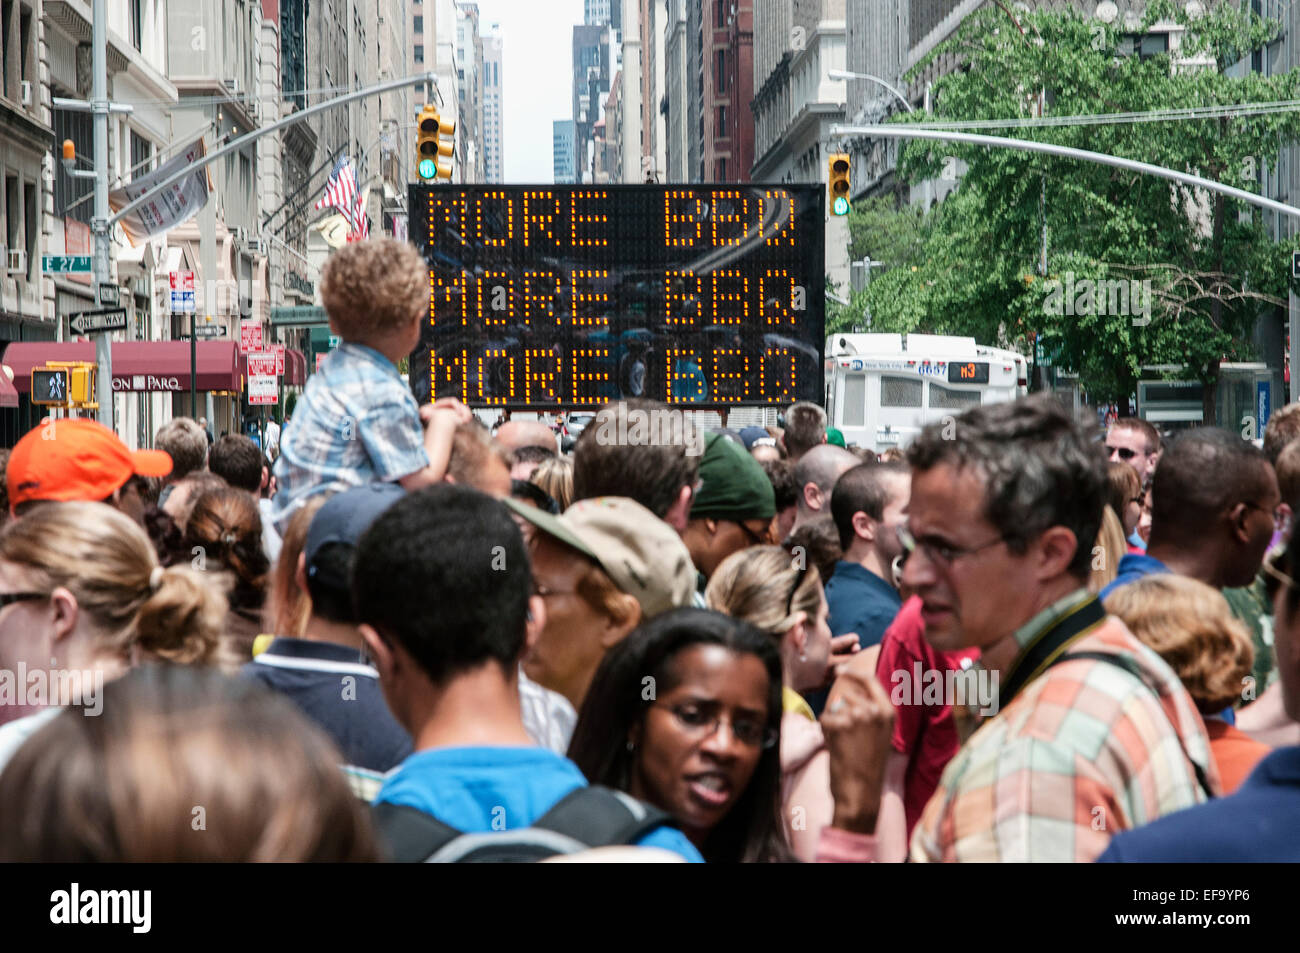 A photograph of the crowds at the Big Apple BBQ held in NYC. - Stock Image